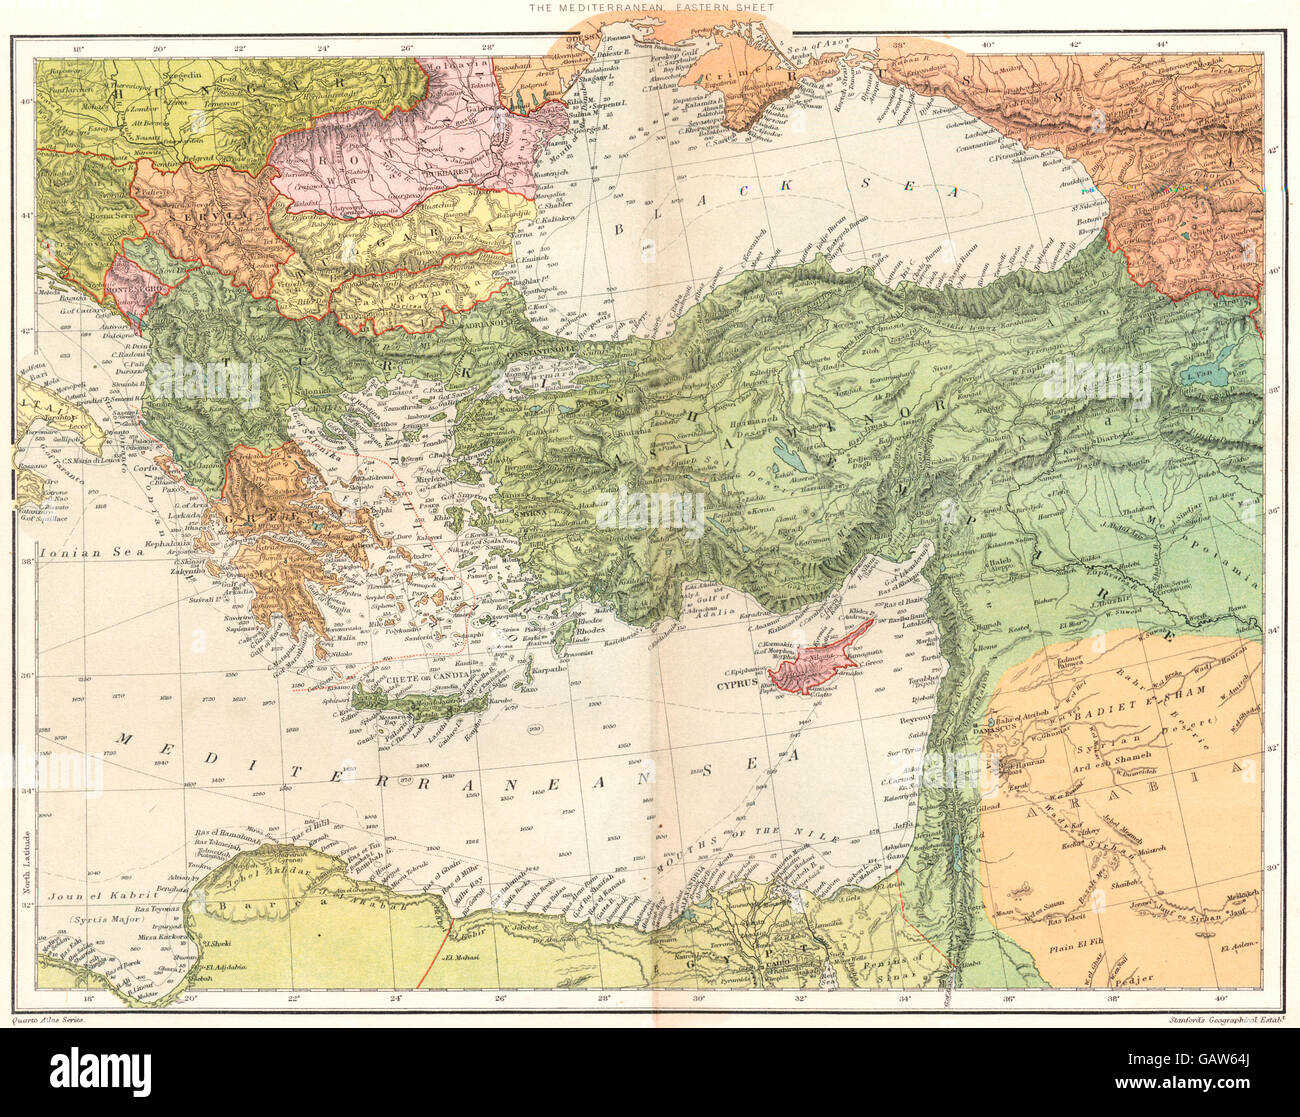 Eastern mediterranean greece egypt turkey cyprus ottoman emp stock eastern mediterranean greece egypt turkey cyprus ottoman emp stanford 1892 map gumiabroncs Image collections